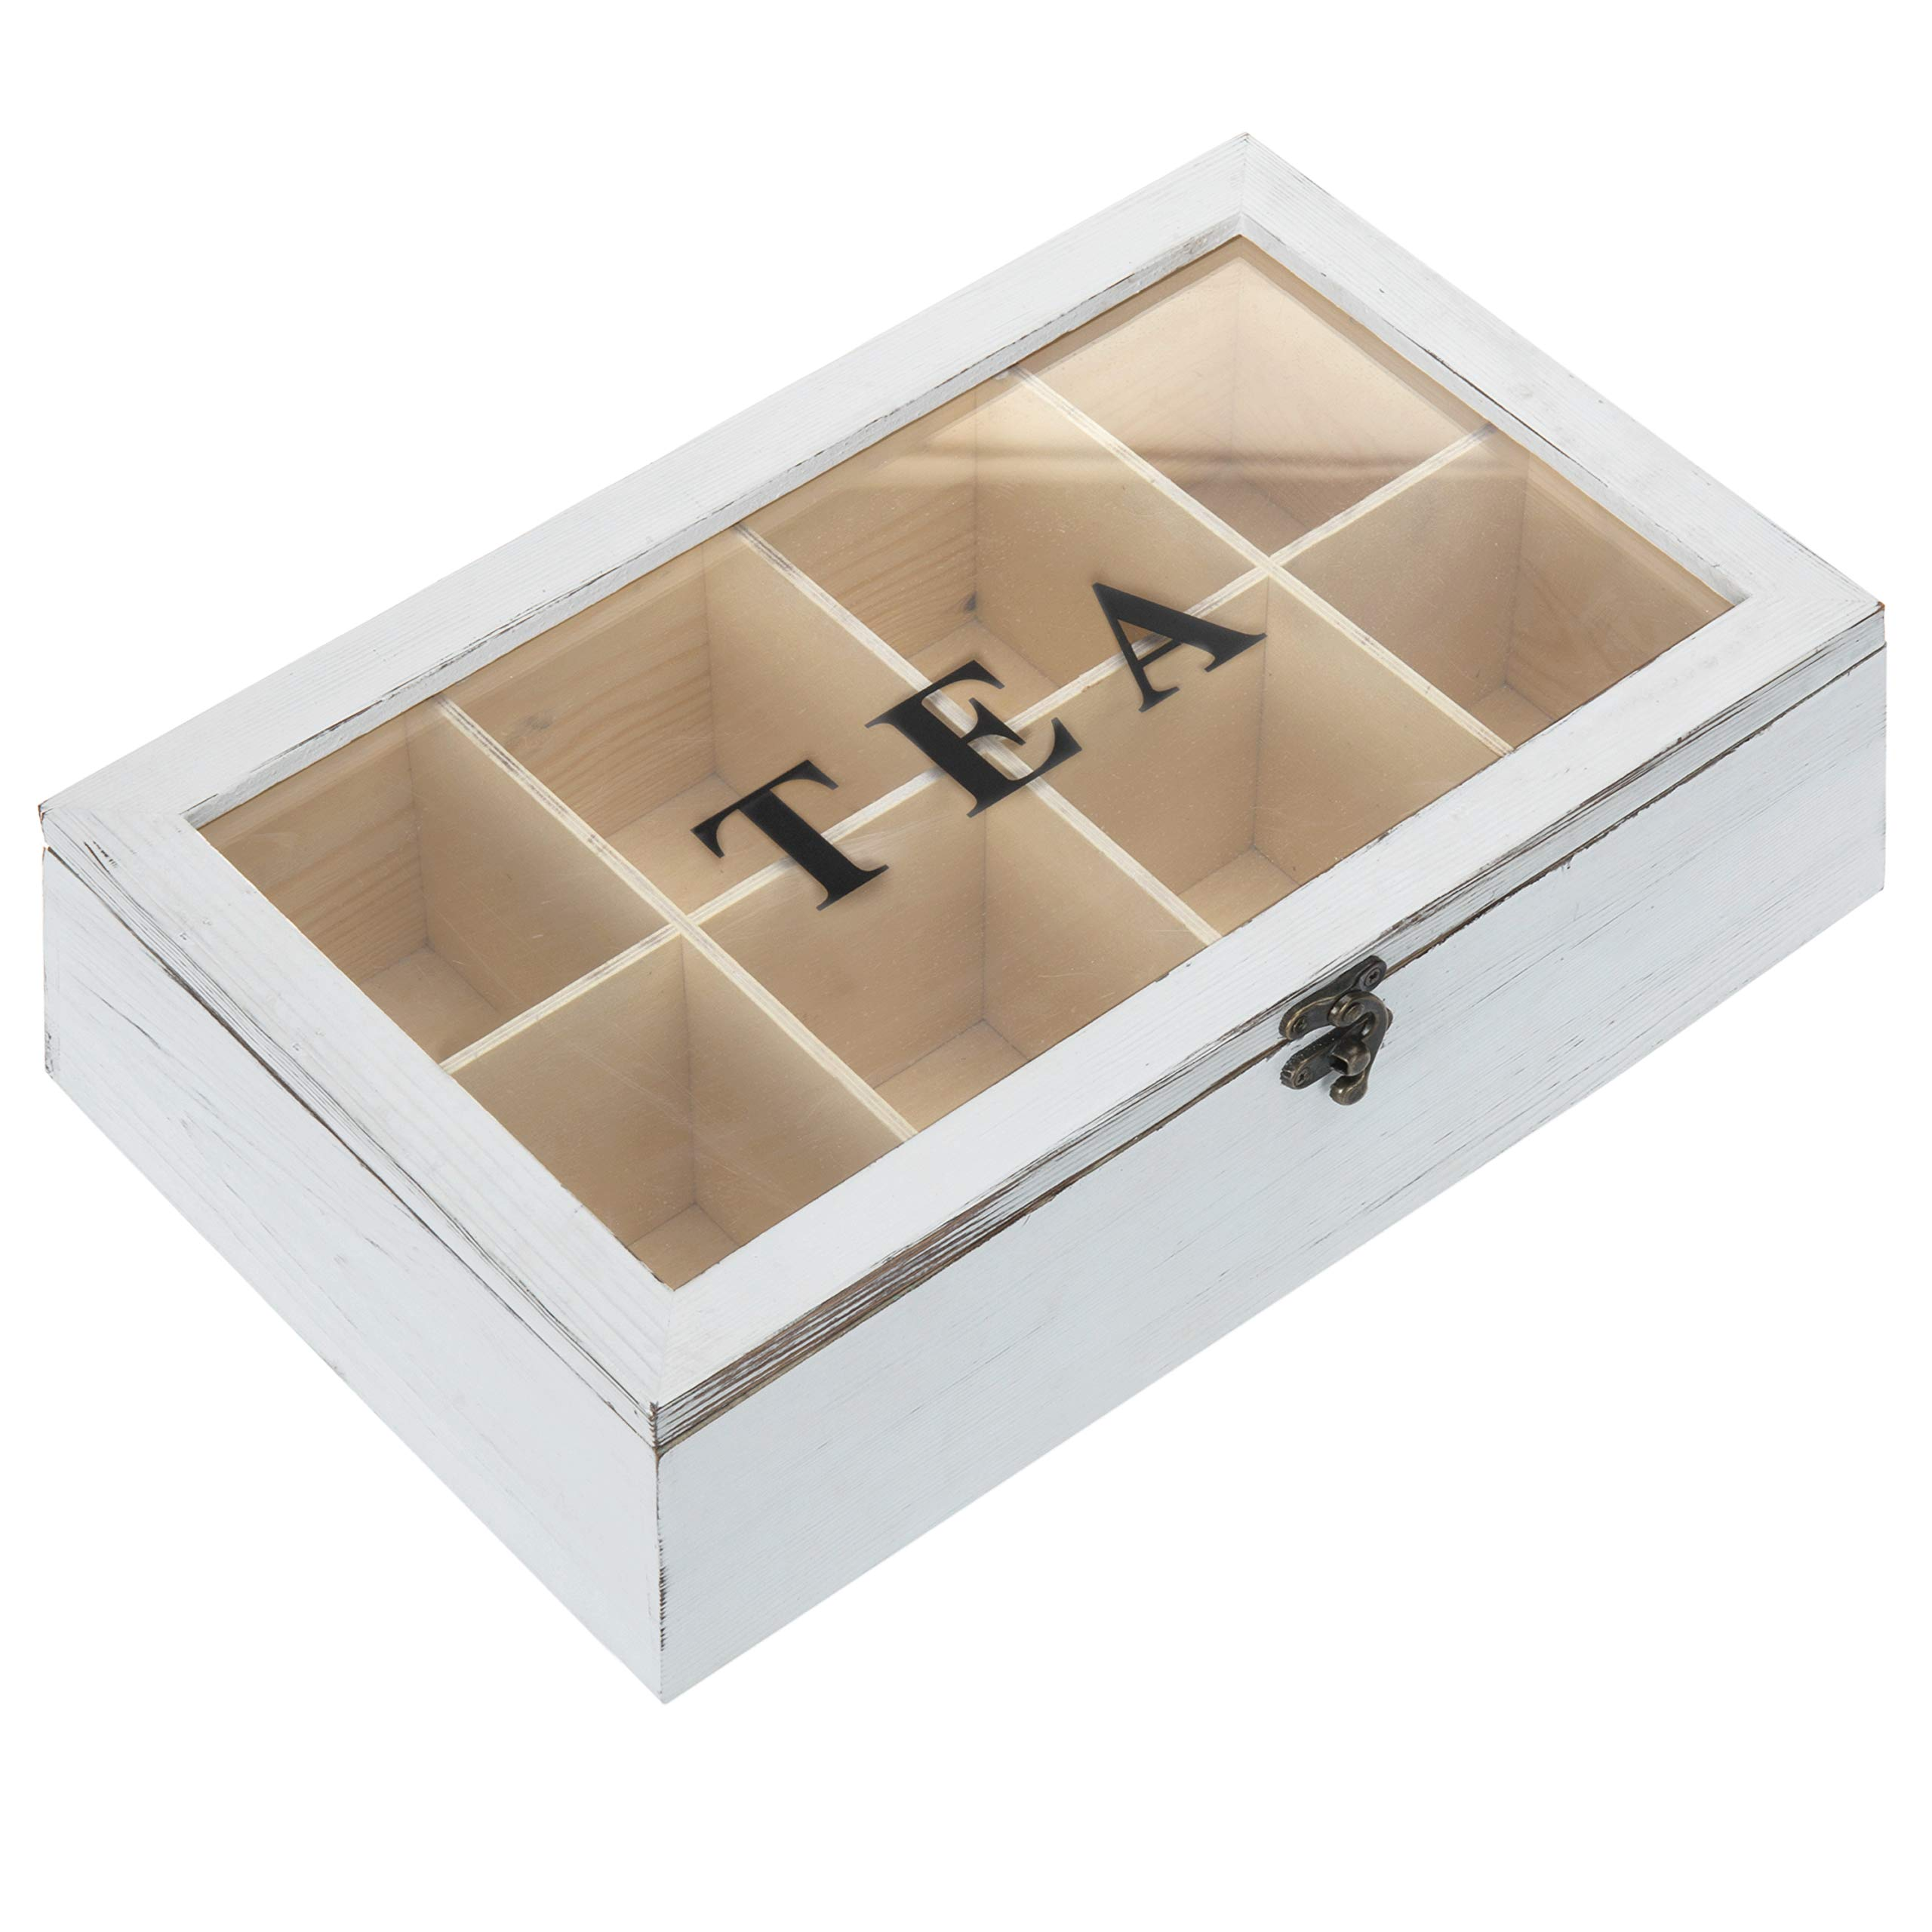 MyGift 8-Compartment Vintage White Wood Tea Bag Storage Box with Lid by MyGift